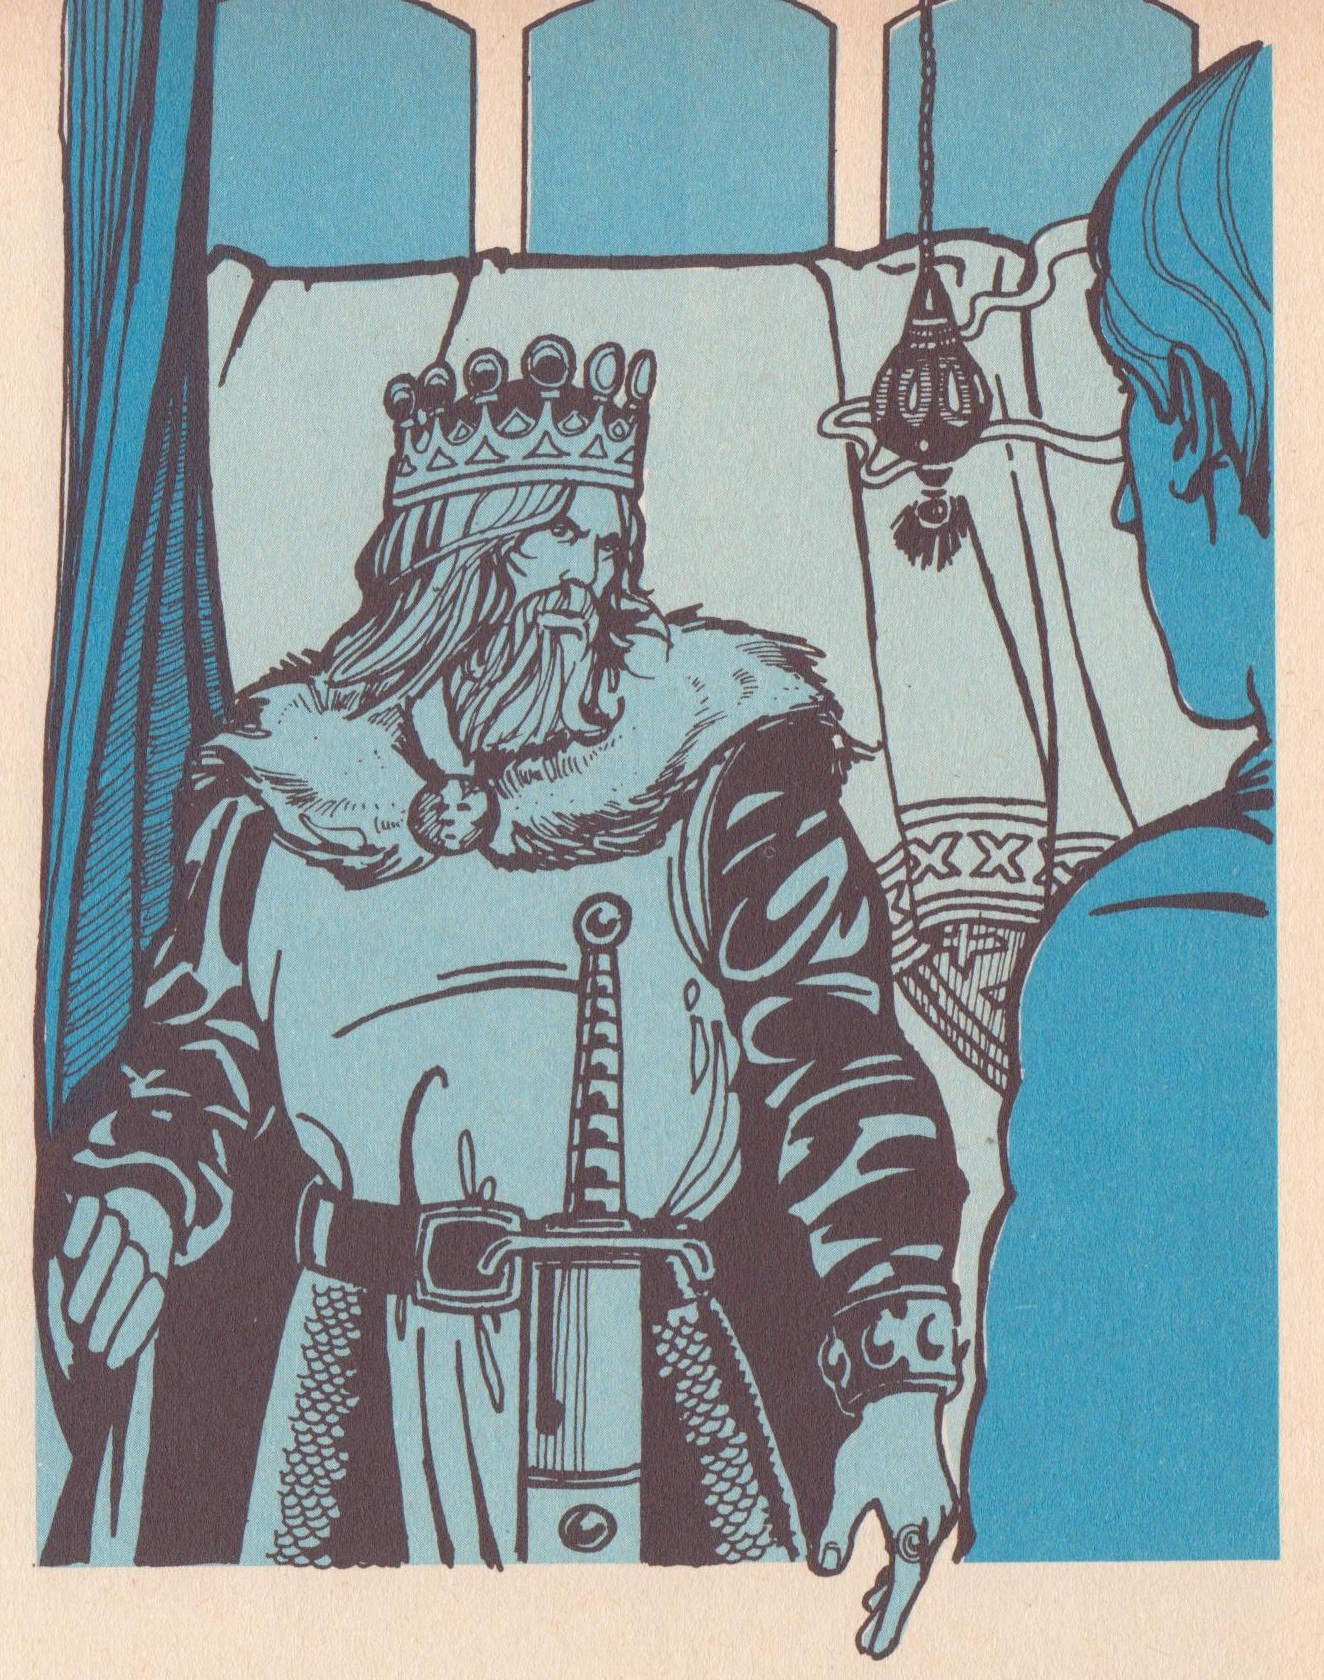 King Arthur The Creation of Camelot